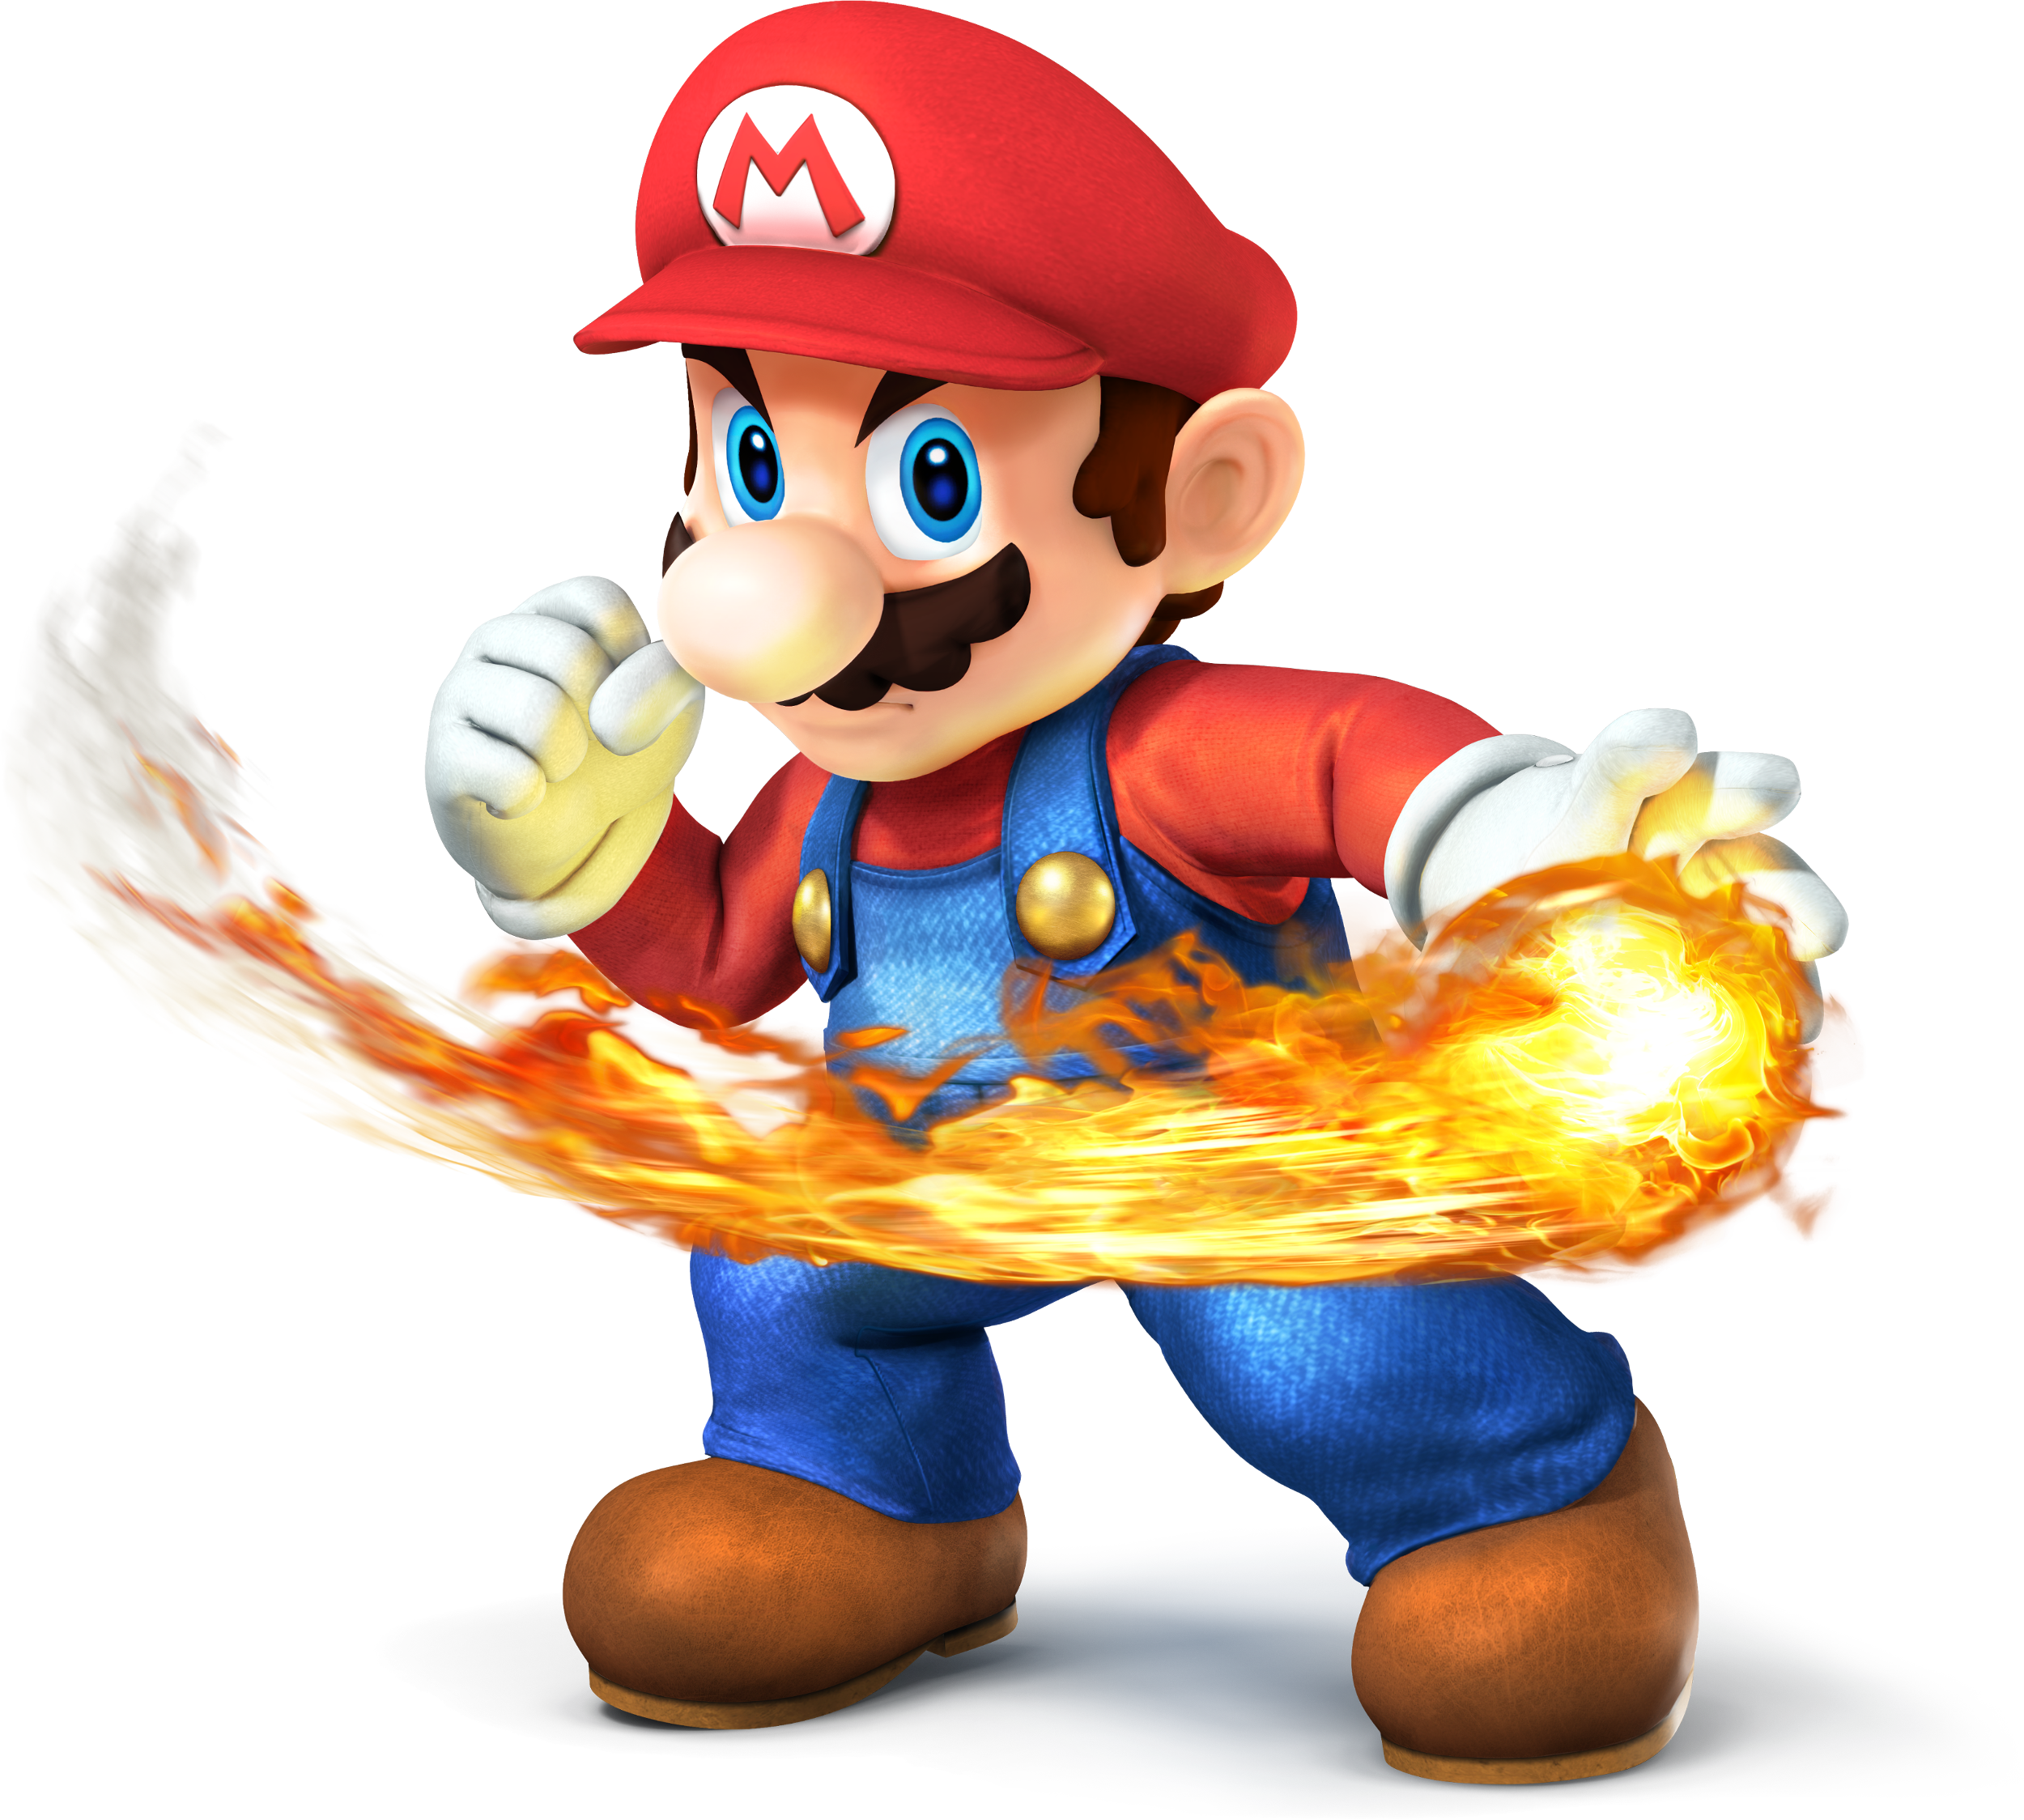 Fire png video. Super mario image purepng